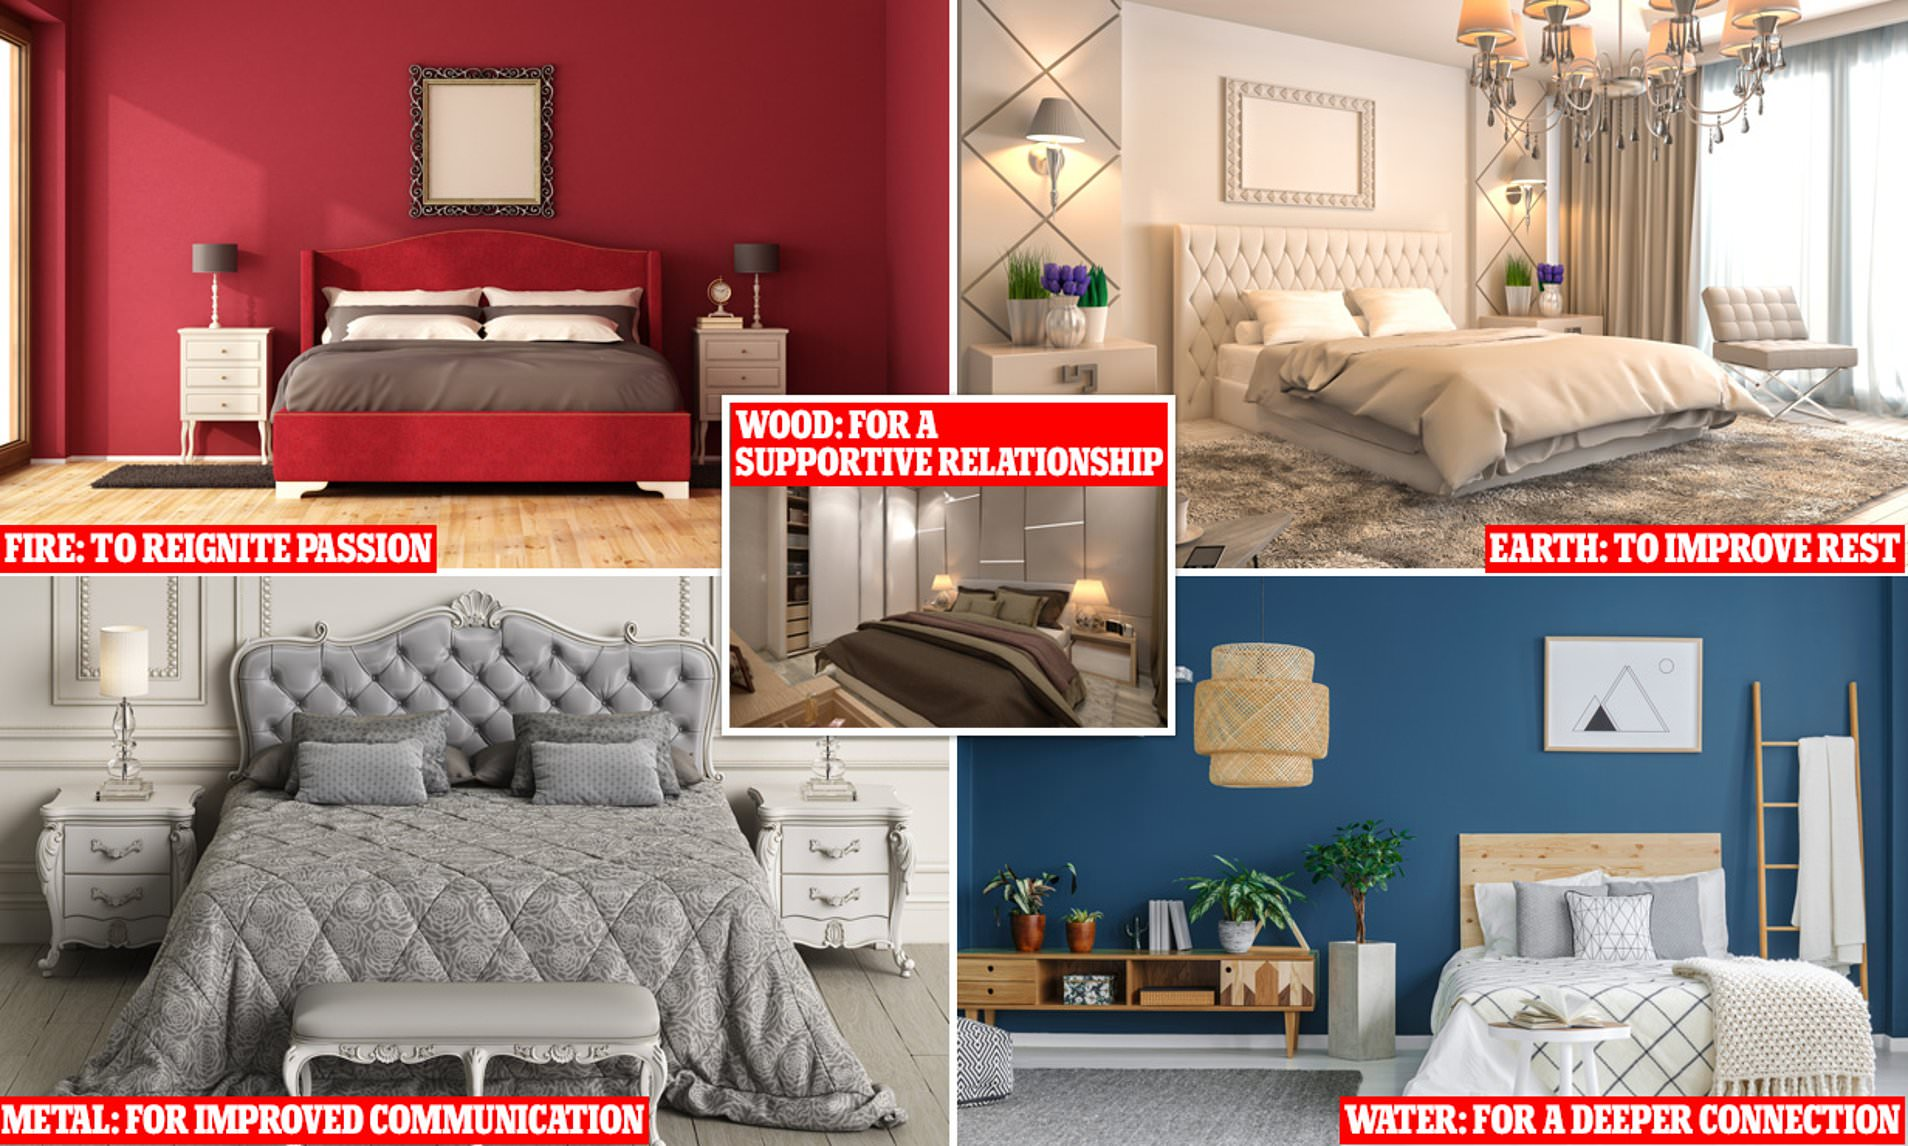 Feng Shui Expert Reveals The Five Elements Theory That Will Bring The Best Energy To Your Bedroom Daily Mail Online